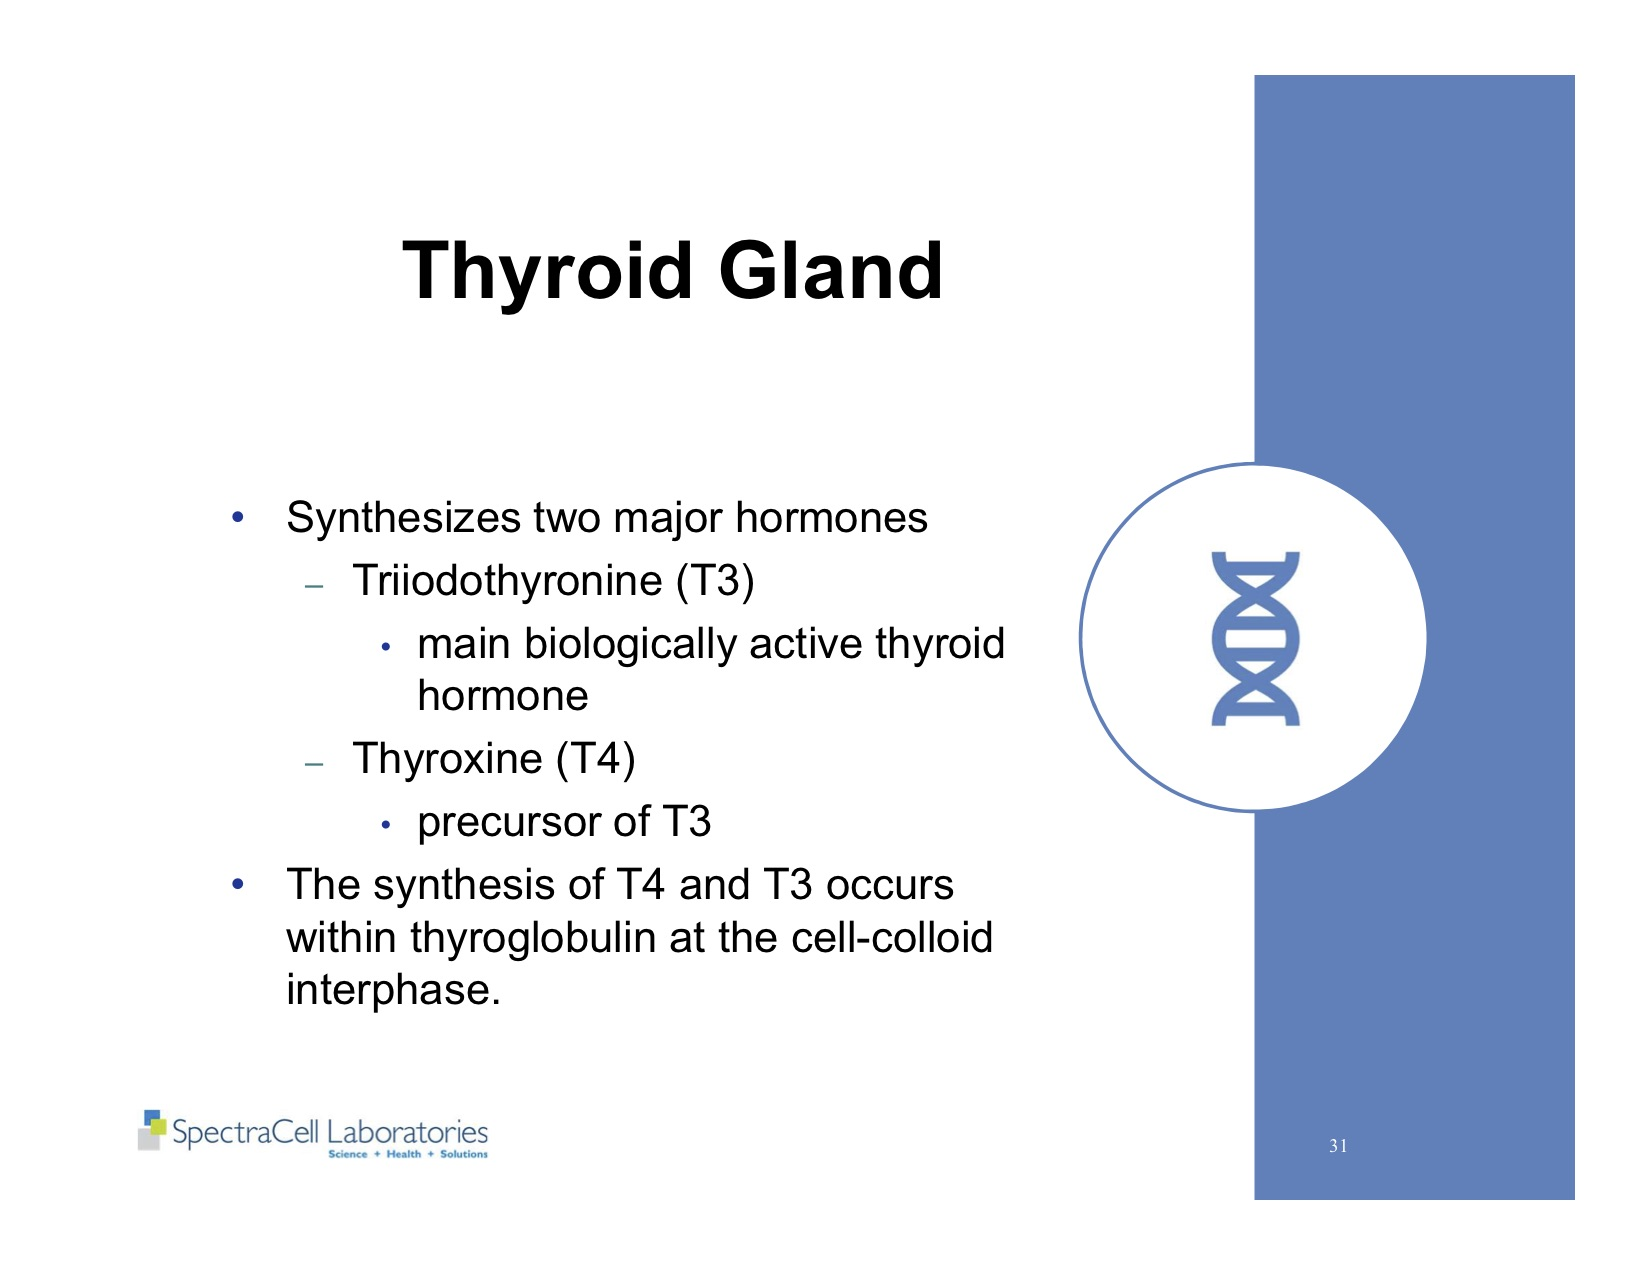 Autism and Thyroid slides 31.jpg